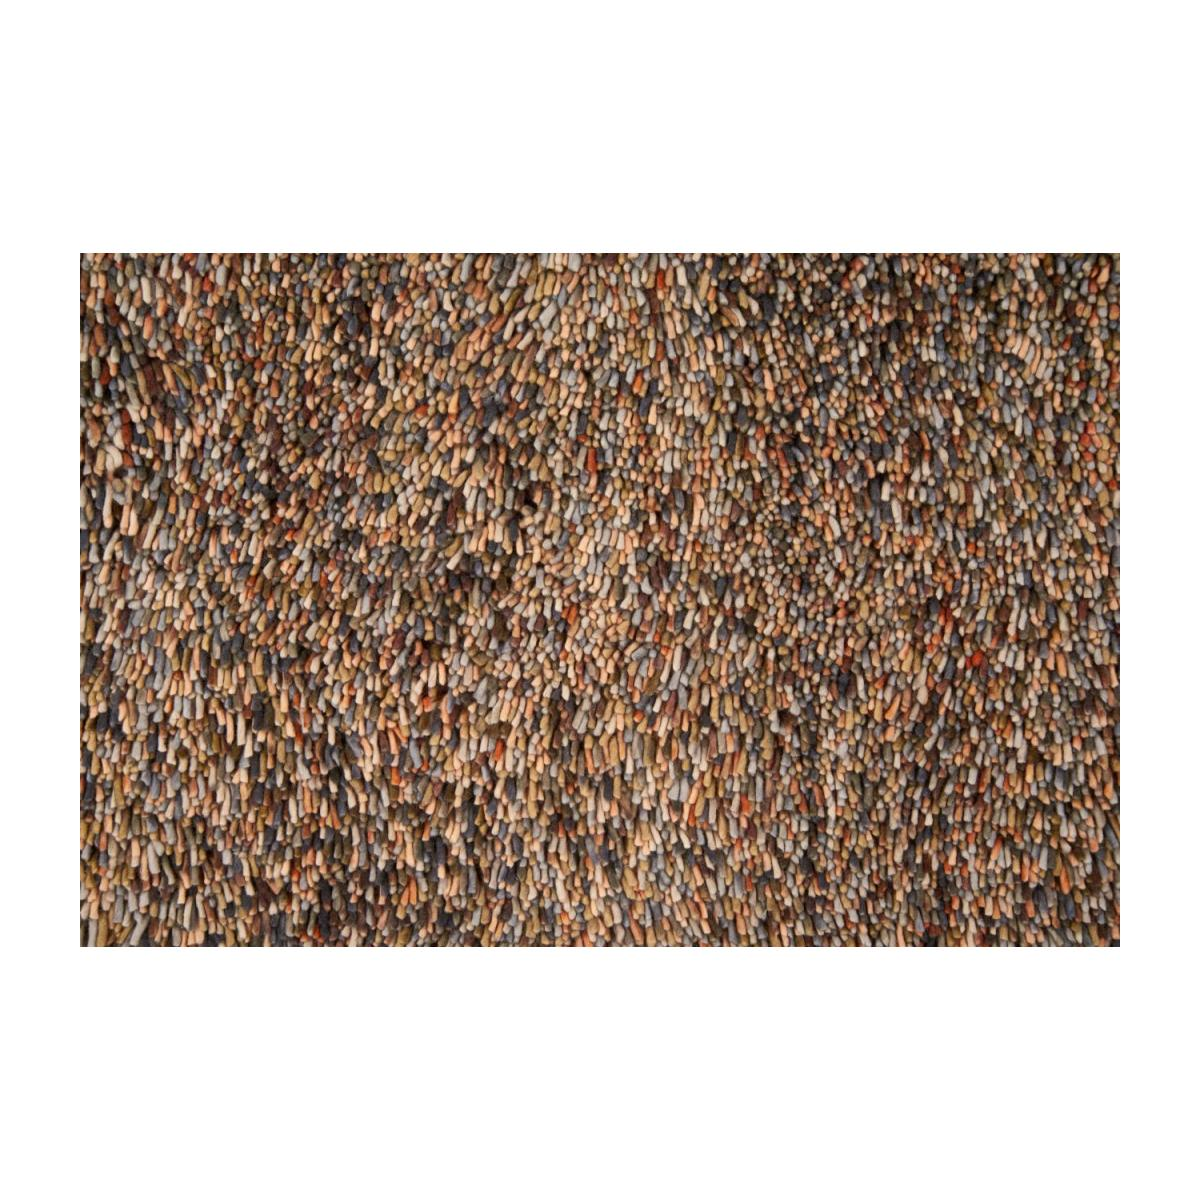 Kianne Woven Shag Carpet Made Of Wool 240x170cm With